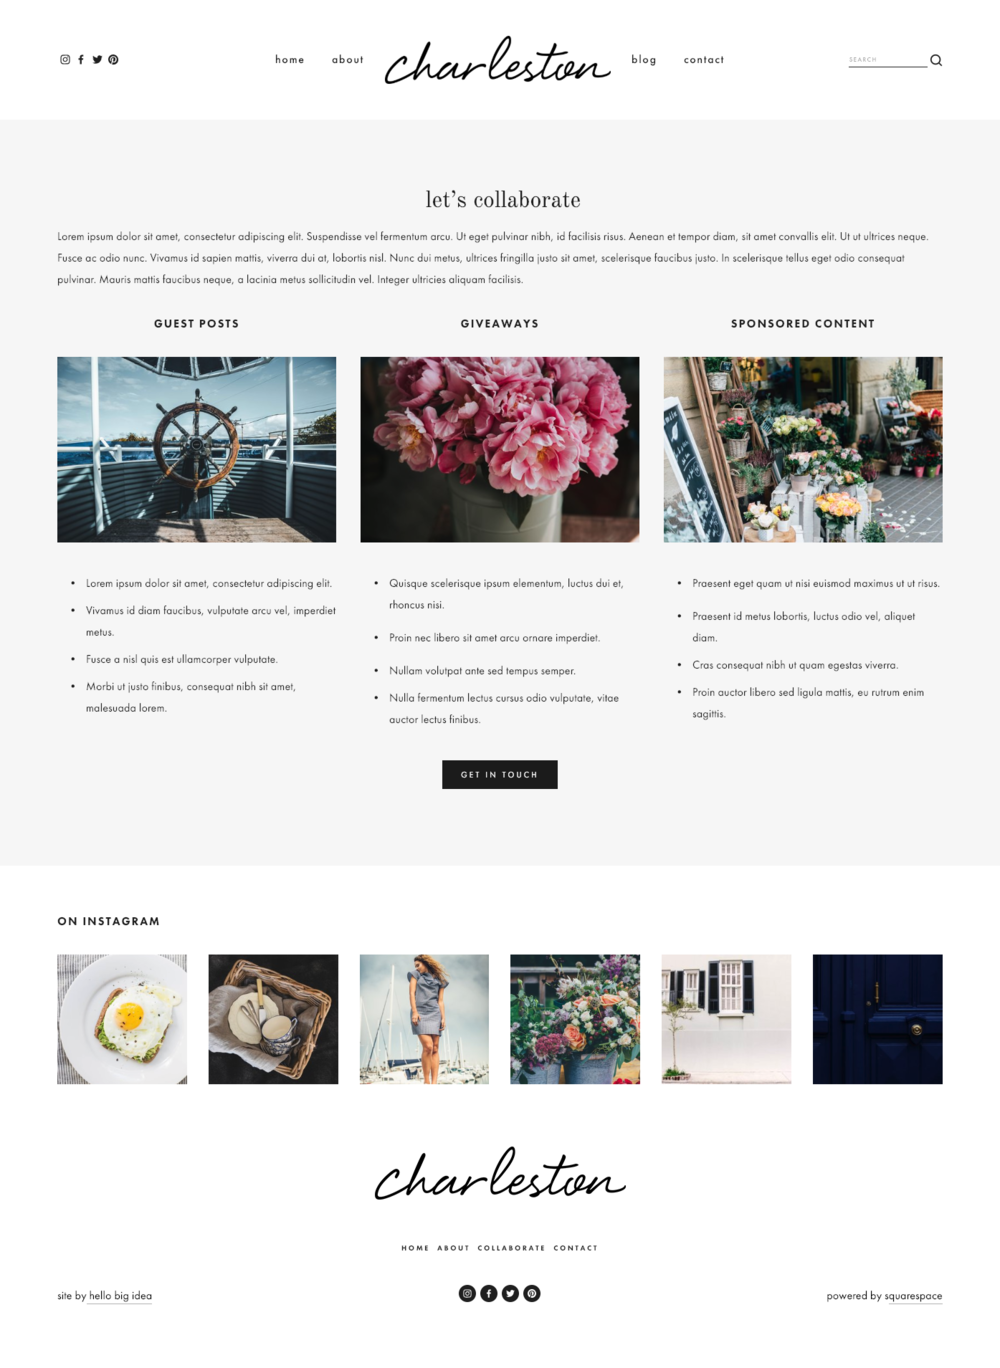 screencapture-hellocharleston-squarespace-collaborate-2018-12-30-20_57_49.png